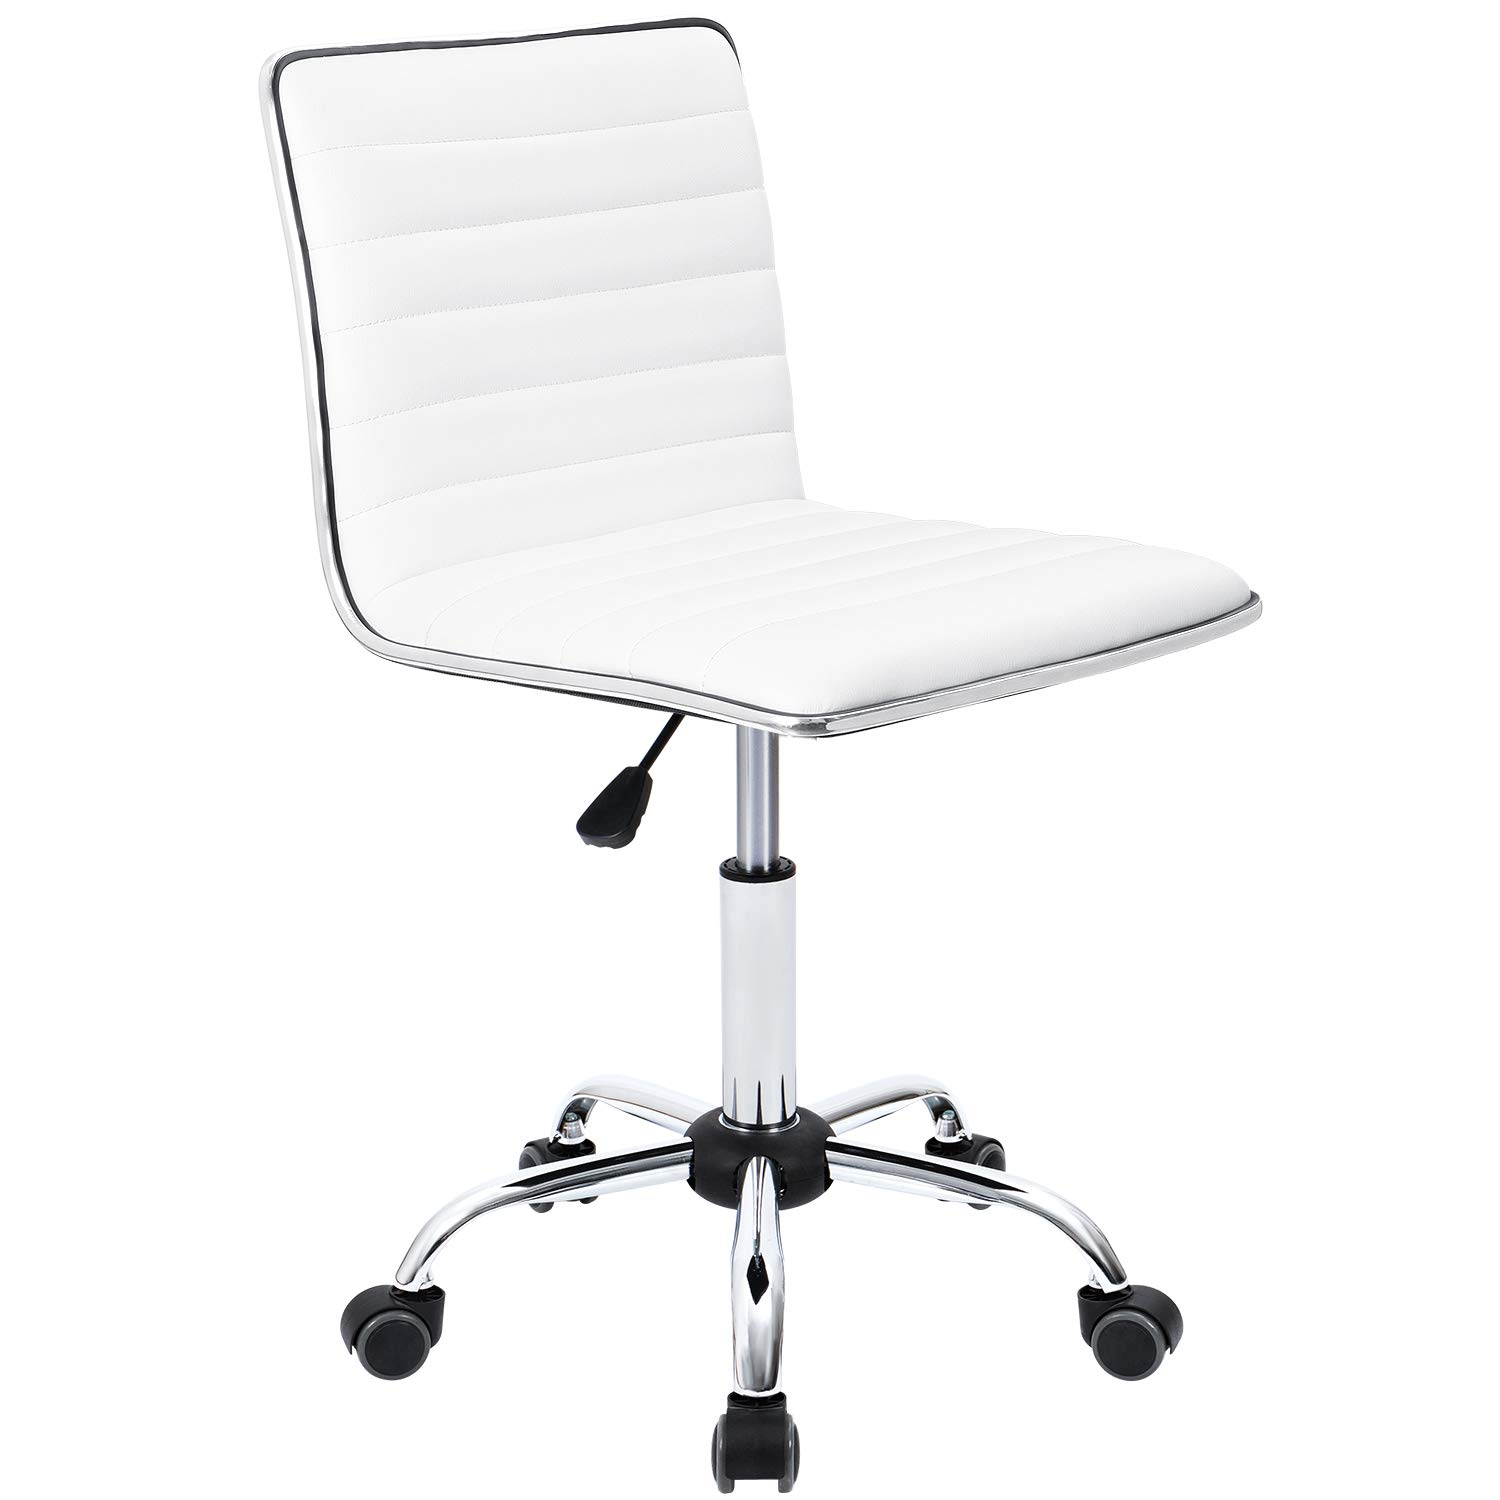 Furmax Mid Back Task Chair,Low Back Leather Swivel Office Chair,Computer Desk Chair Retro with Armless Ribbed (White) by Furmax